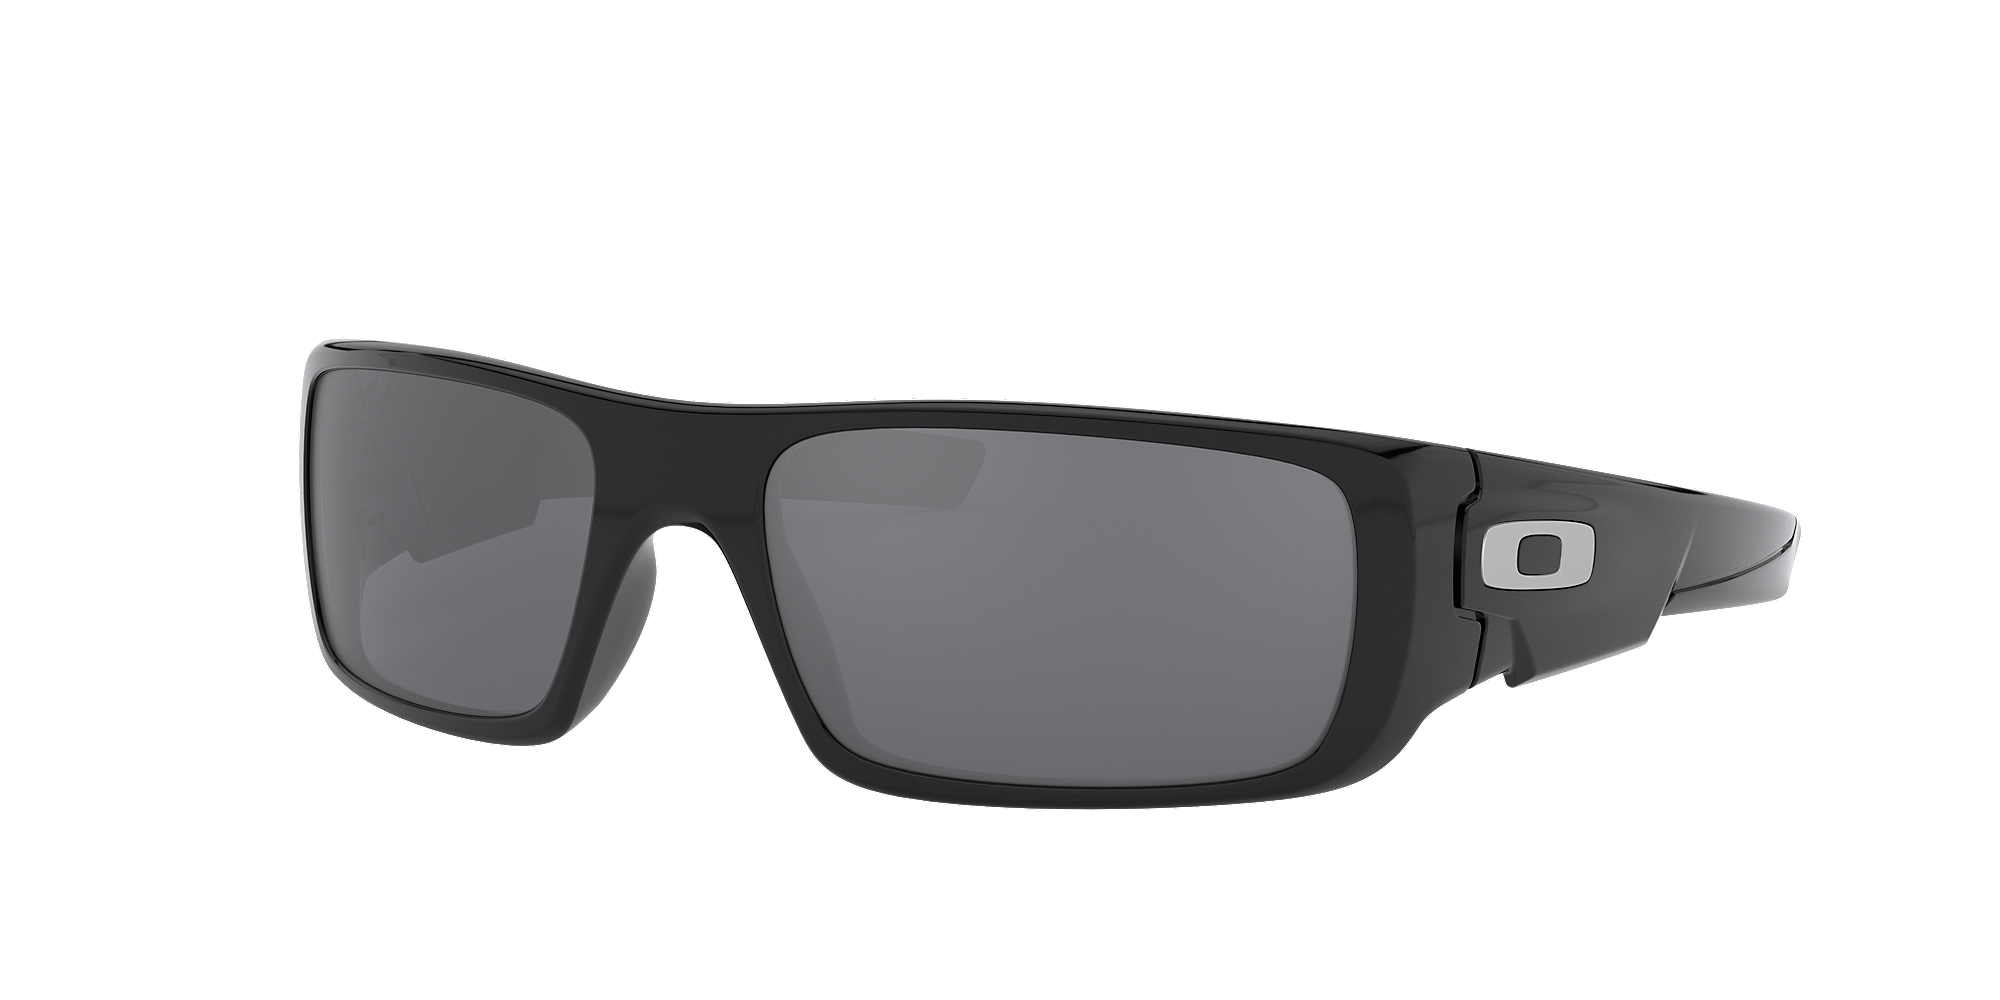 find oakley sunglasses near me louisiana brigade